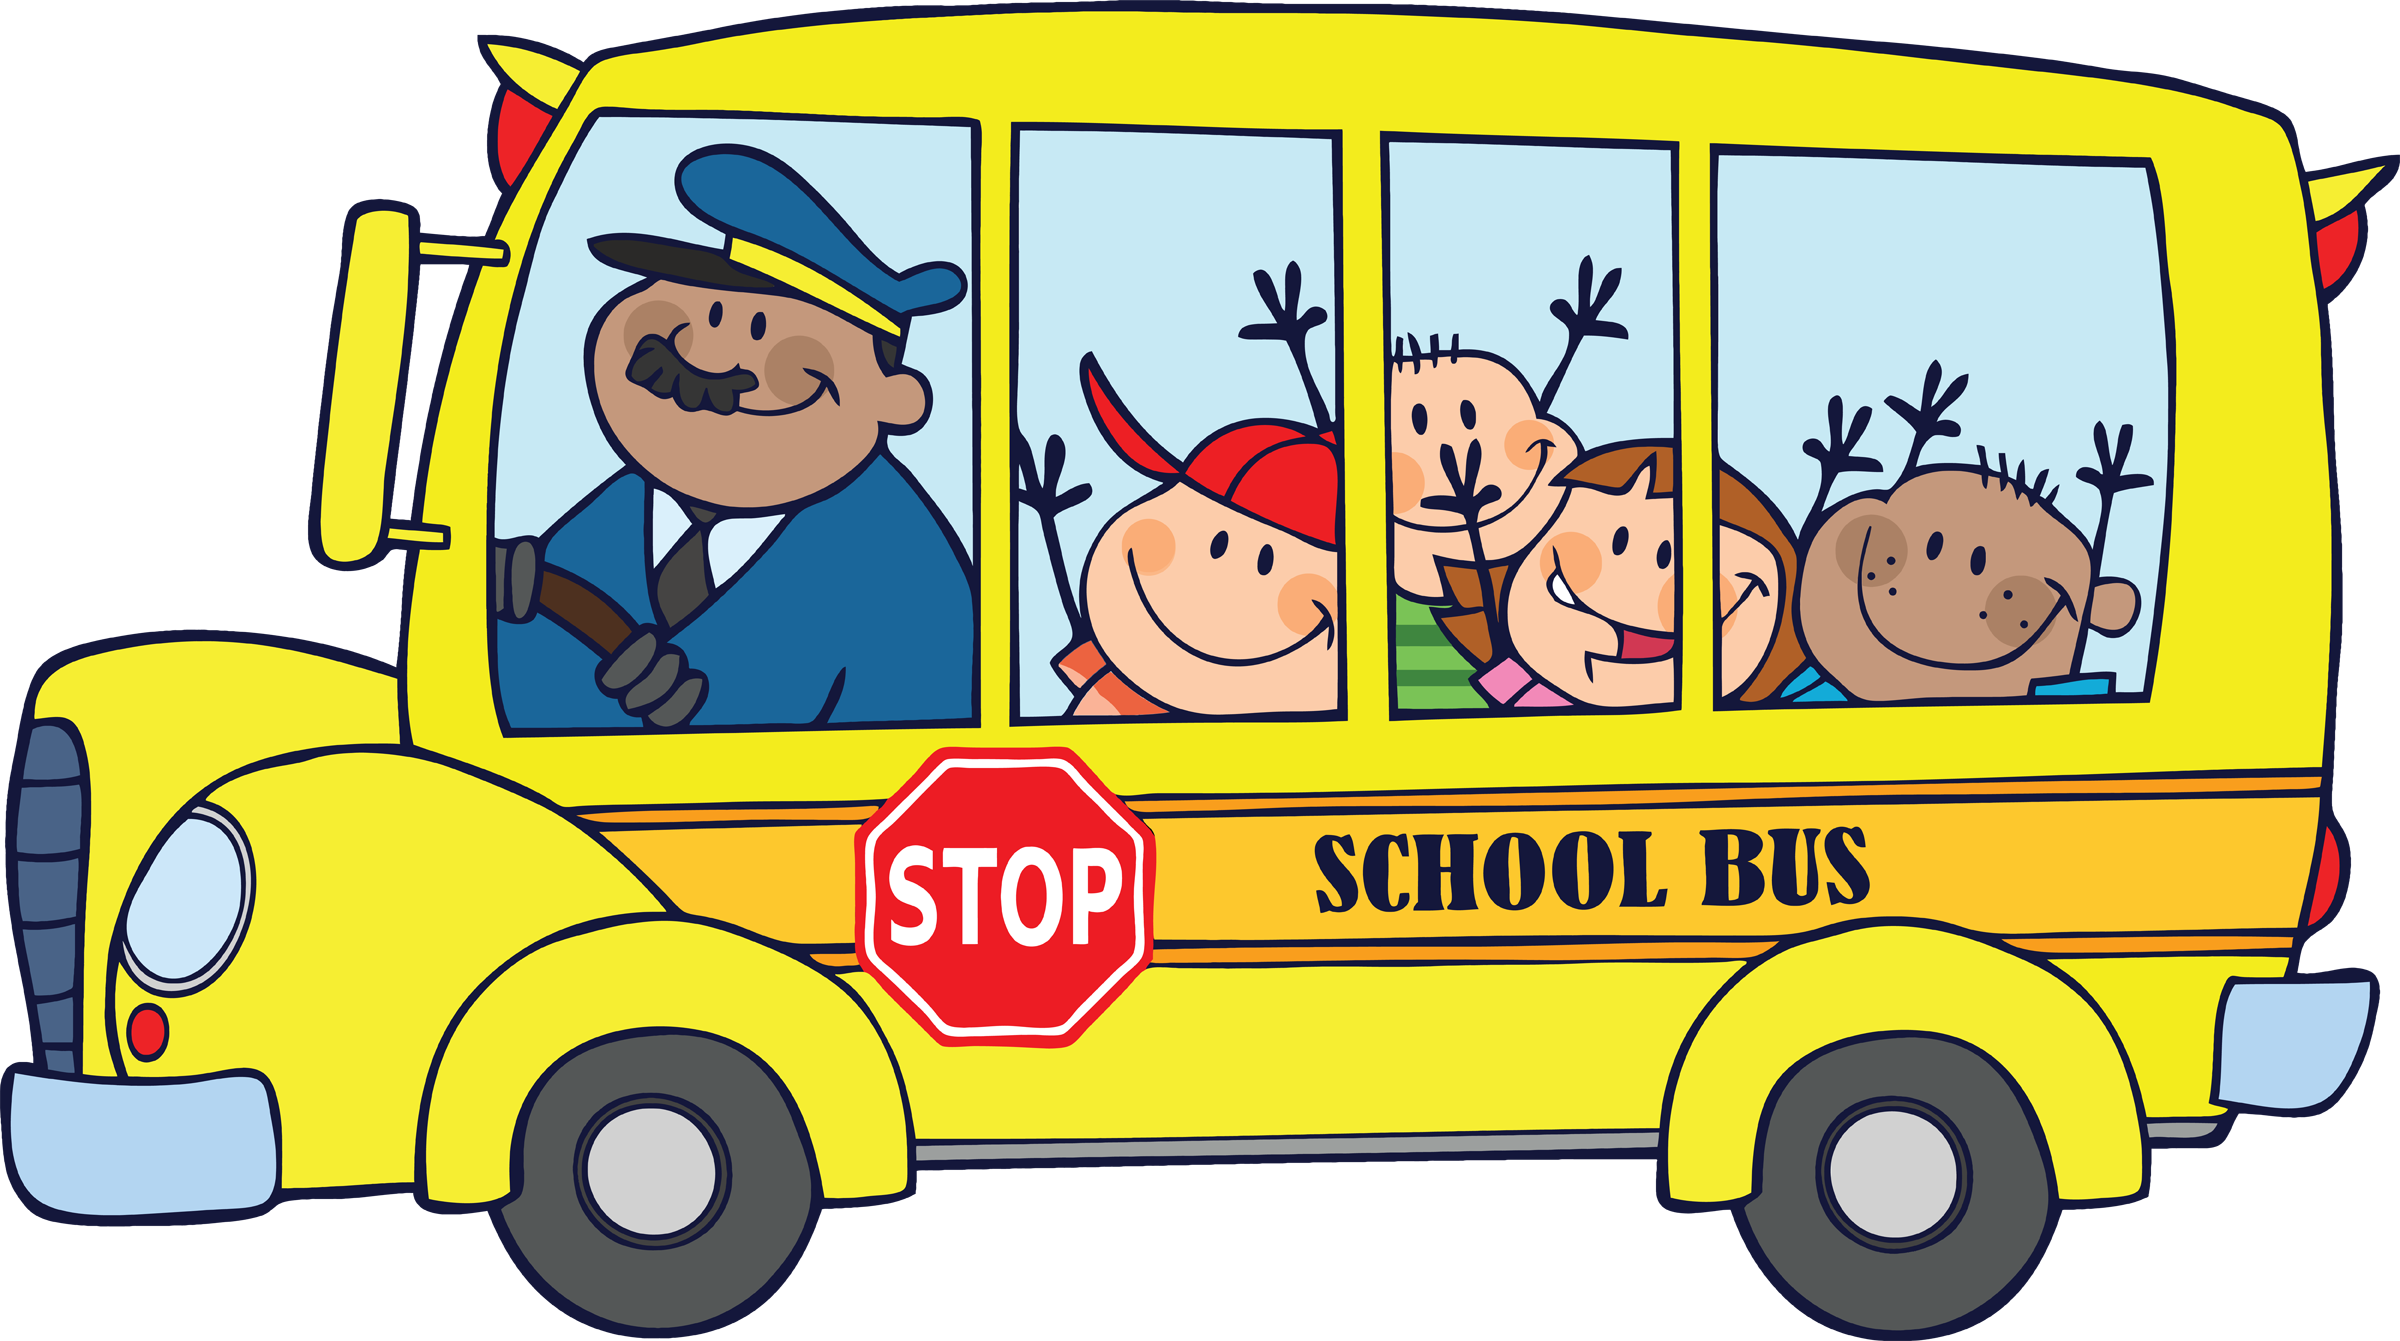 Driving to school clipart image royalty free download School Bus Driver Quotes | Clipart Panda - Free Clipart Images ... image royalty free download